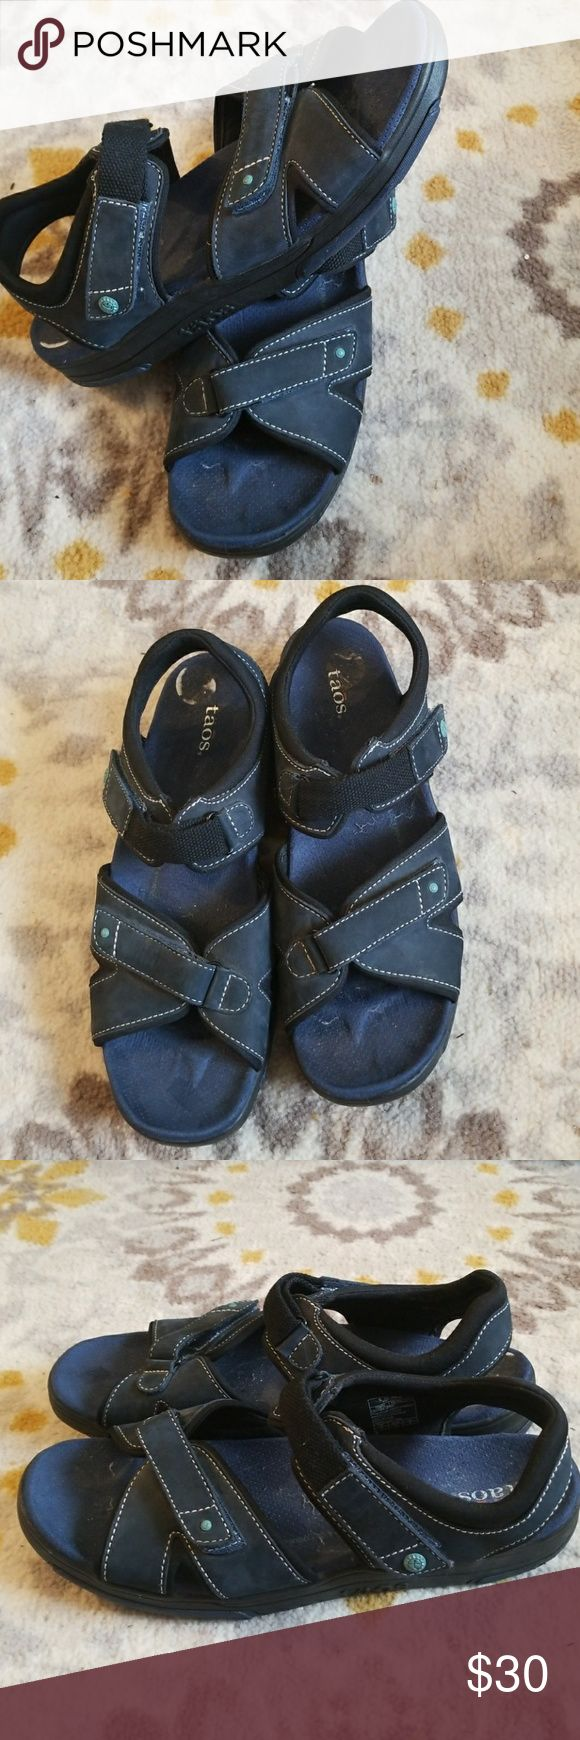 Taos Sandals Taos blue sandals in great used condition.  Comfortable shoe with arch support. Great for hiking or for everyday wear. Adjustable velcro closures. Size 11. Taos Footwear Shoes Sandals